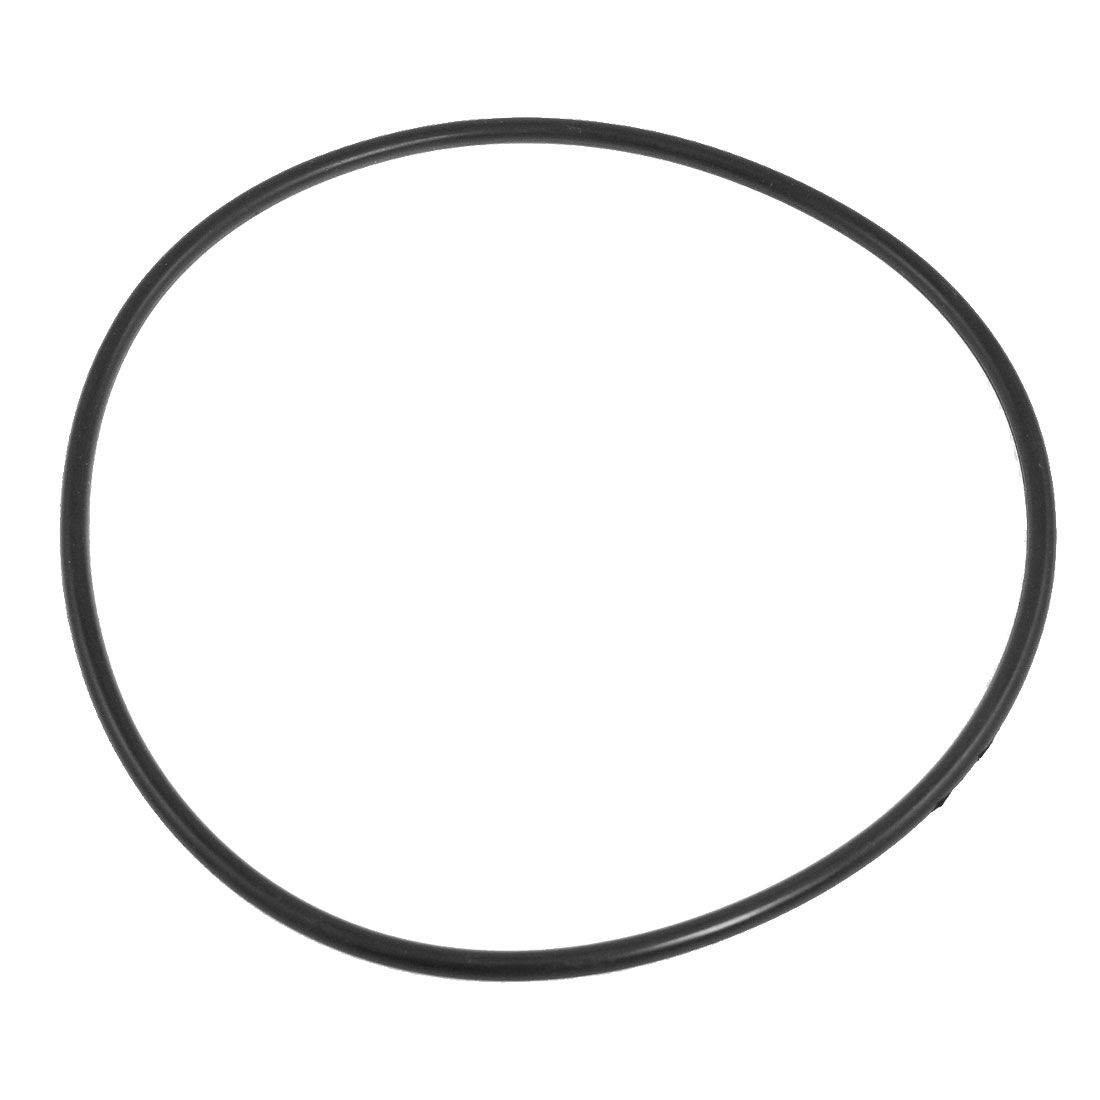 Unique Bargains 160mm x 170mm x 5mm Nitrile Rubber NBR Sealing O Ring Gasket Washer